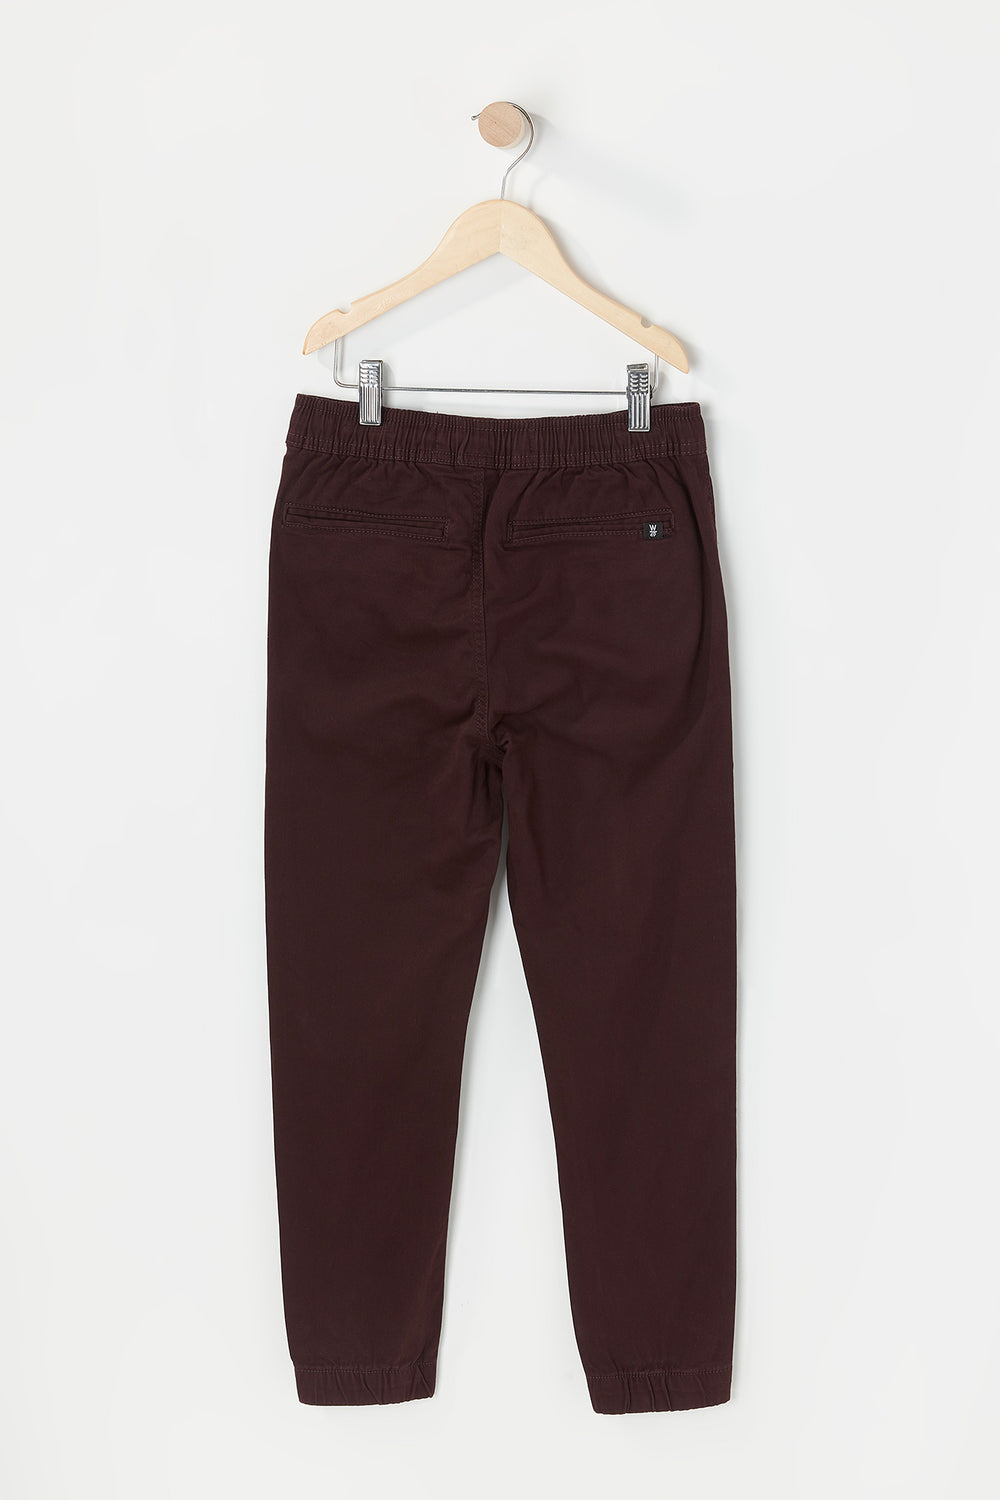 West49 Youth Jogger Burgundy